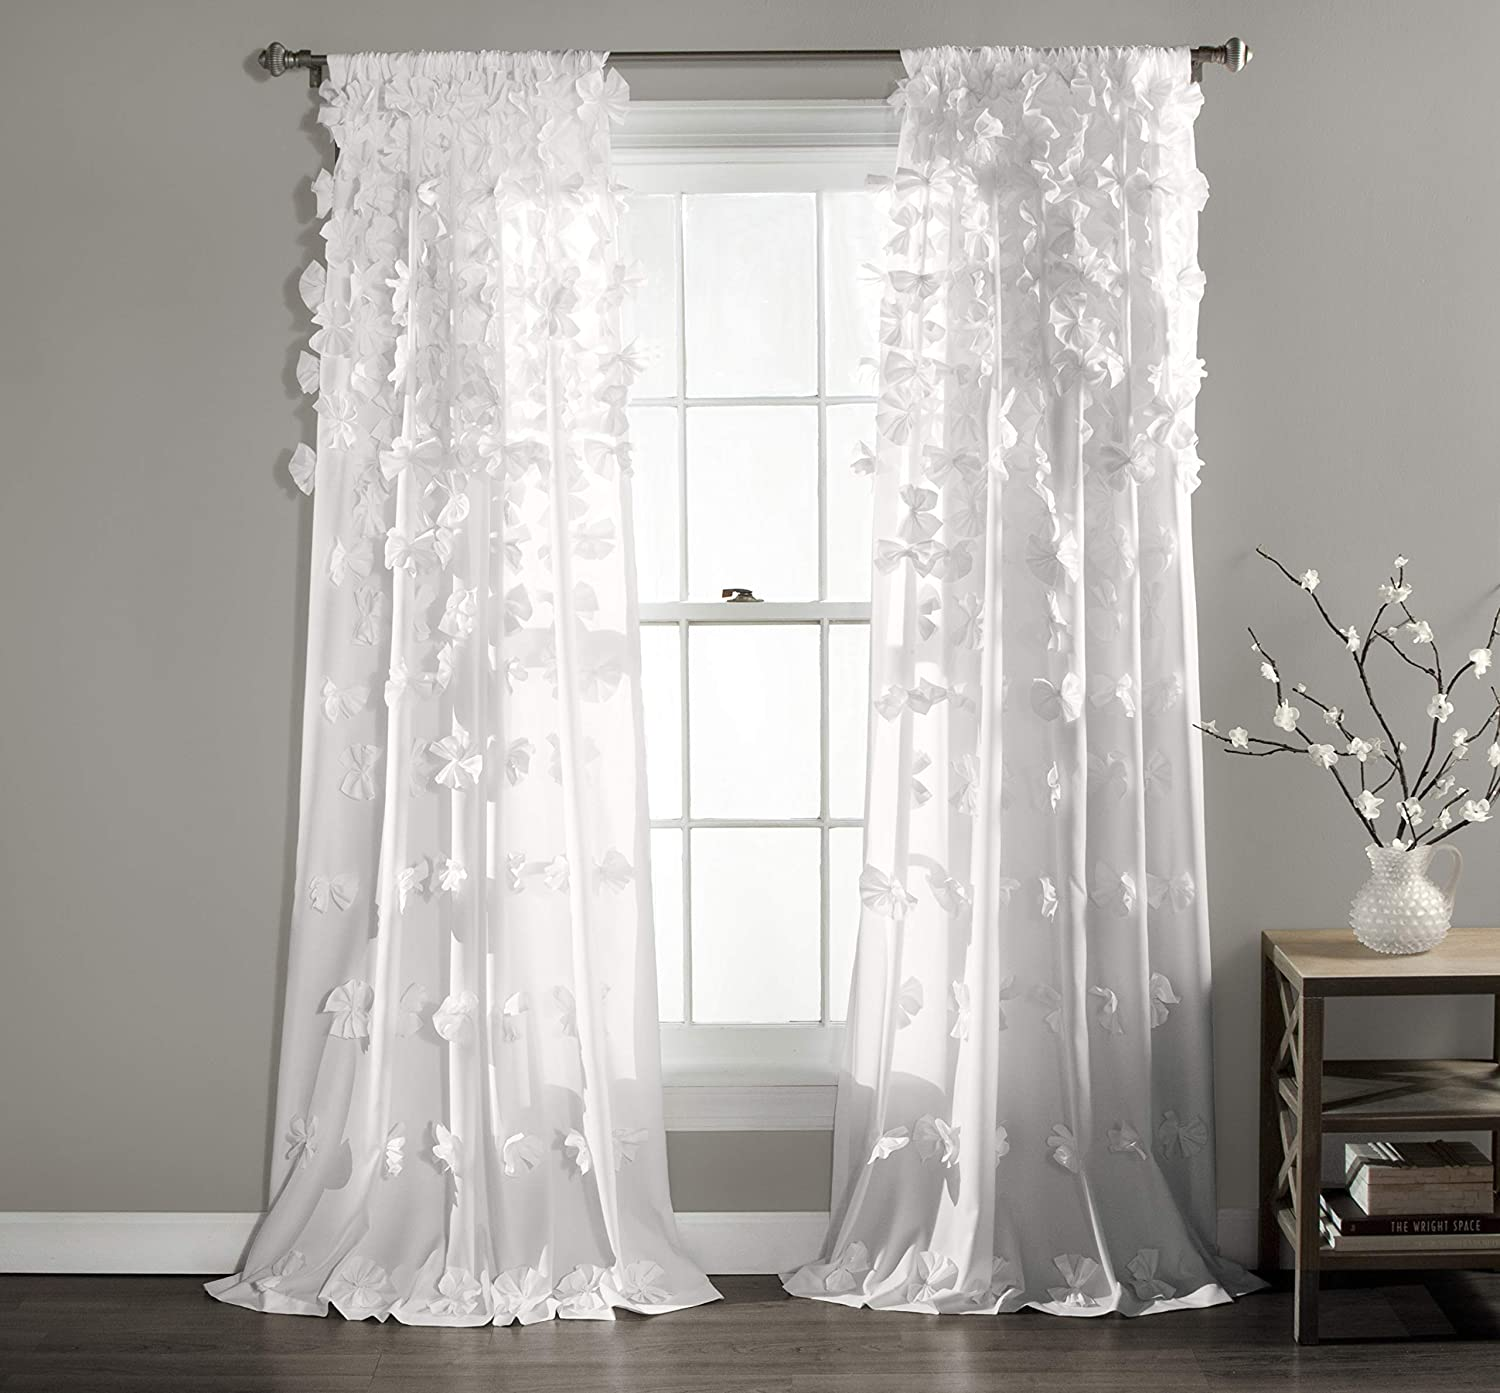 "Lush Decor Riley Curtain Sheer Ruffled Textured Bow Window Panel for Living, Dining Room, Bedroom (Single) 95"" x 54"" White, L"